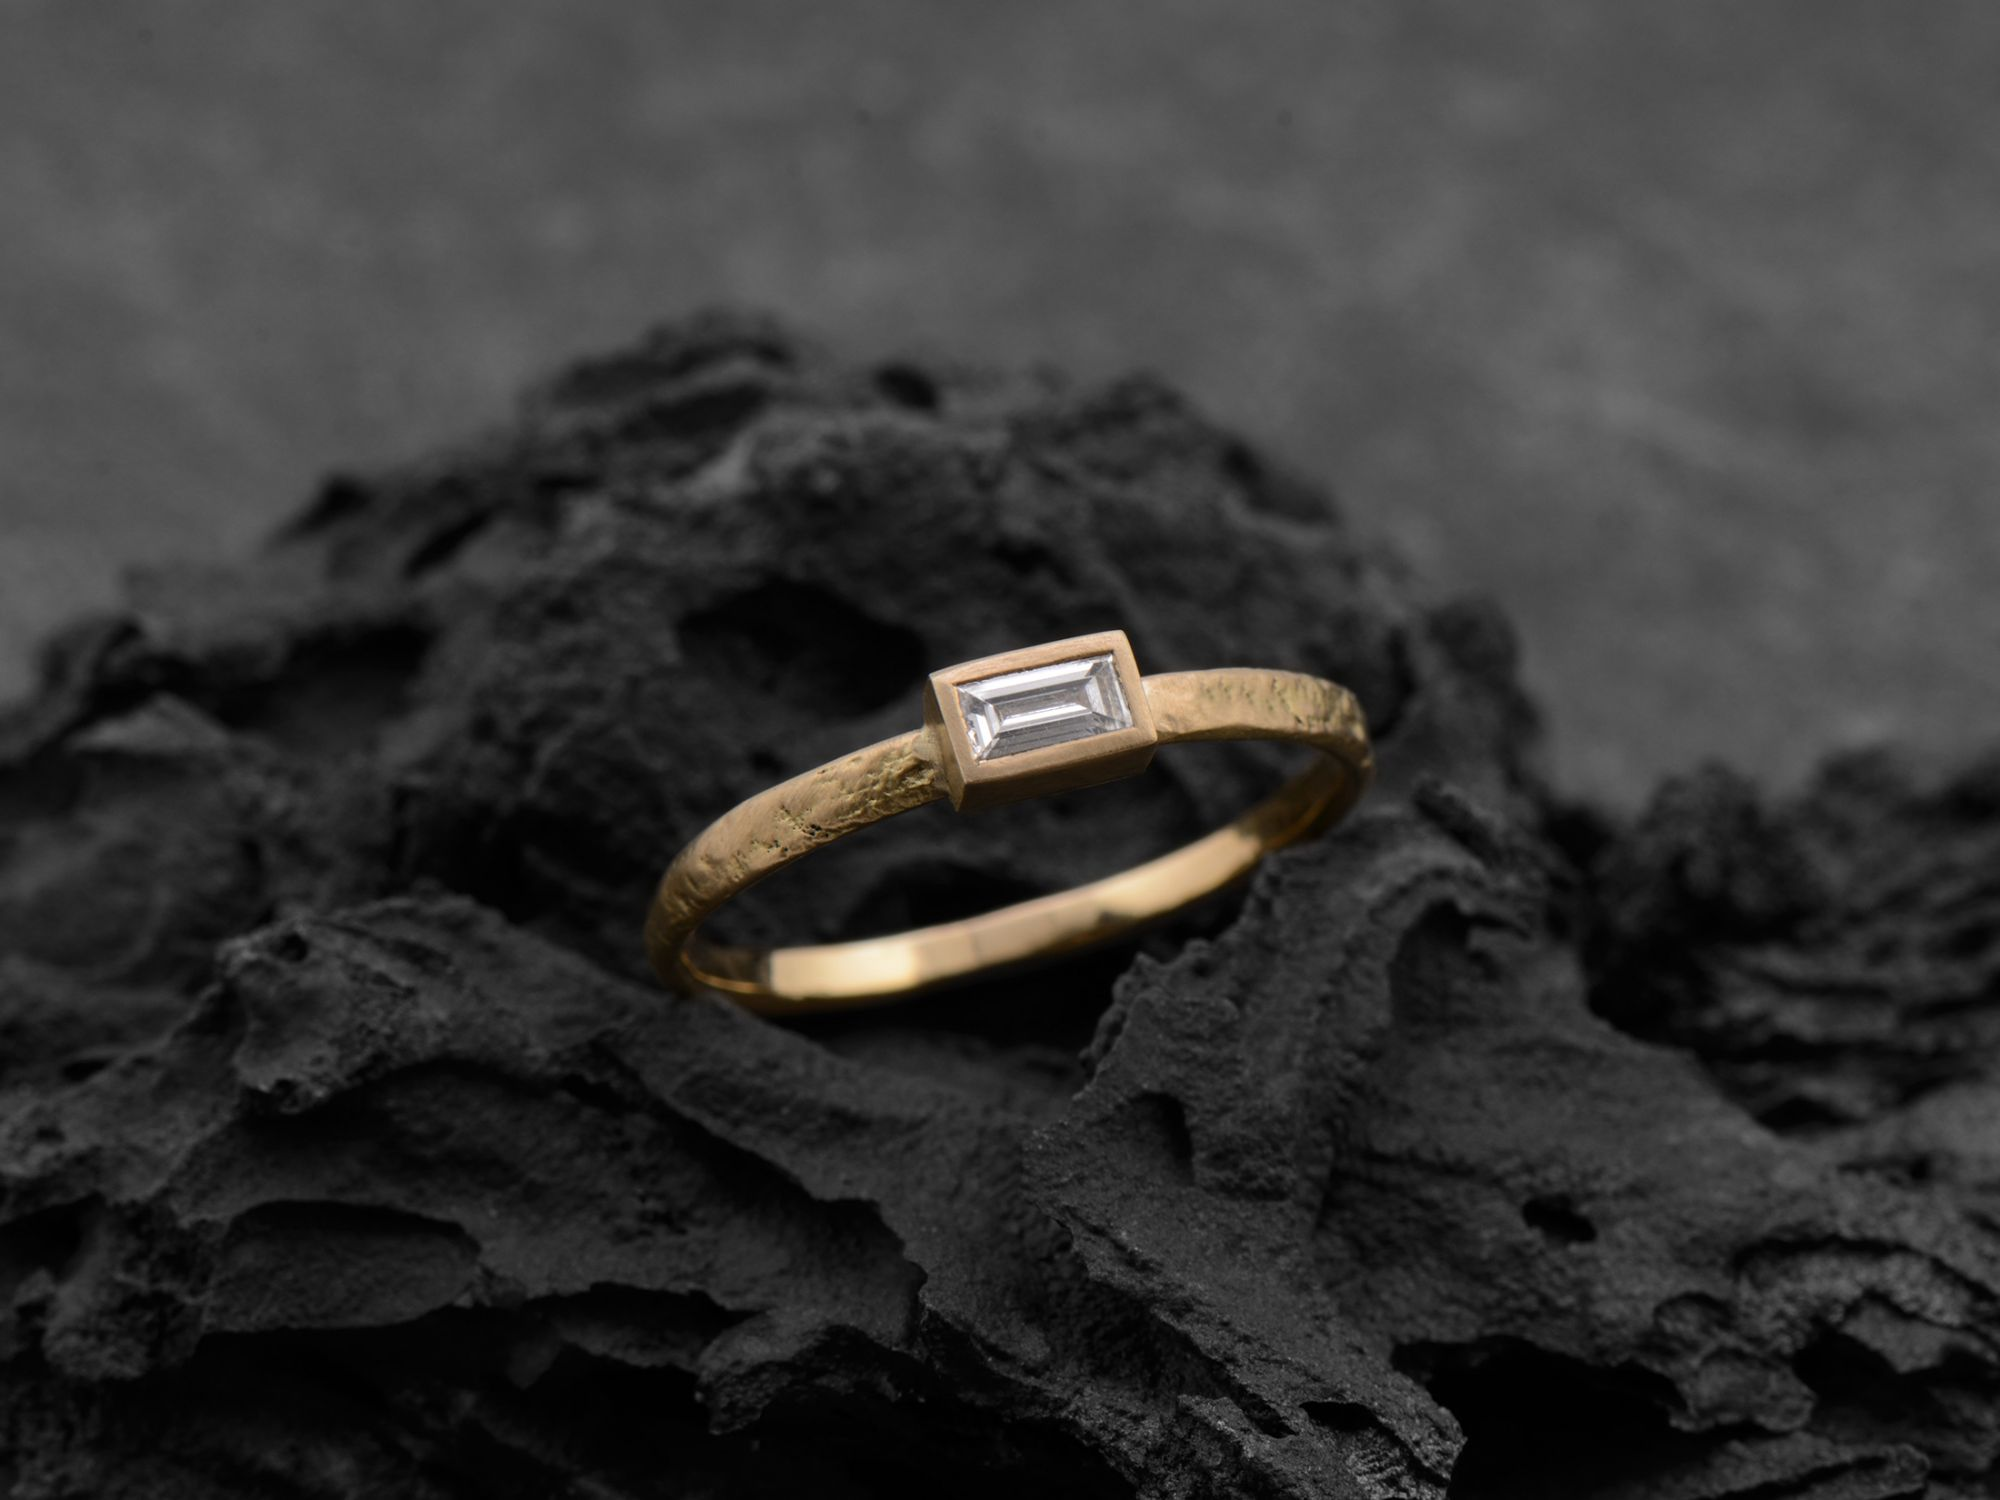 Melisande diamond ring by Emmanuelle Zysman